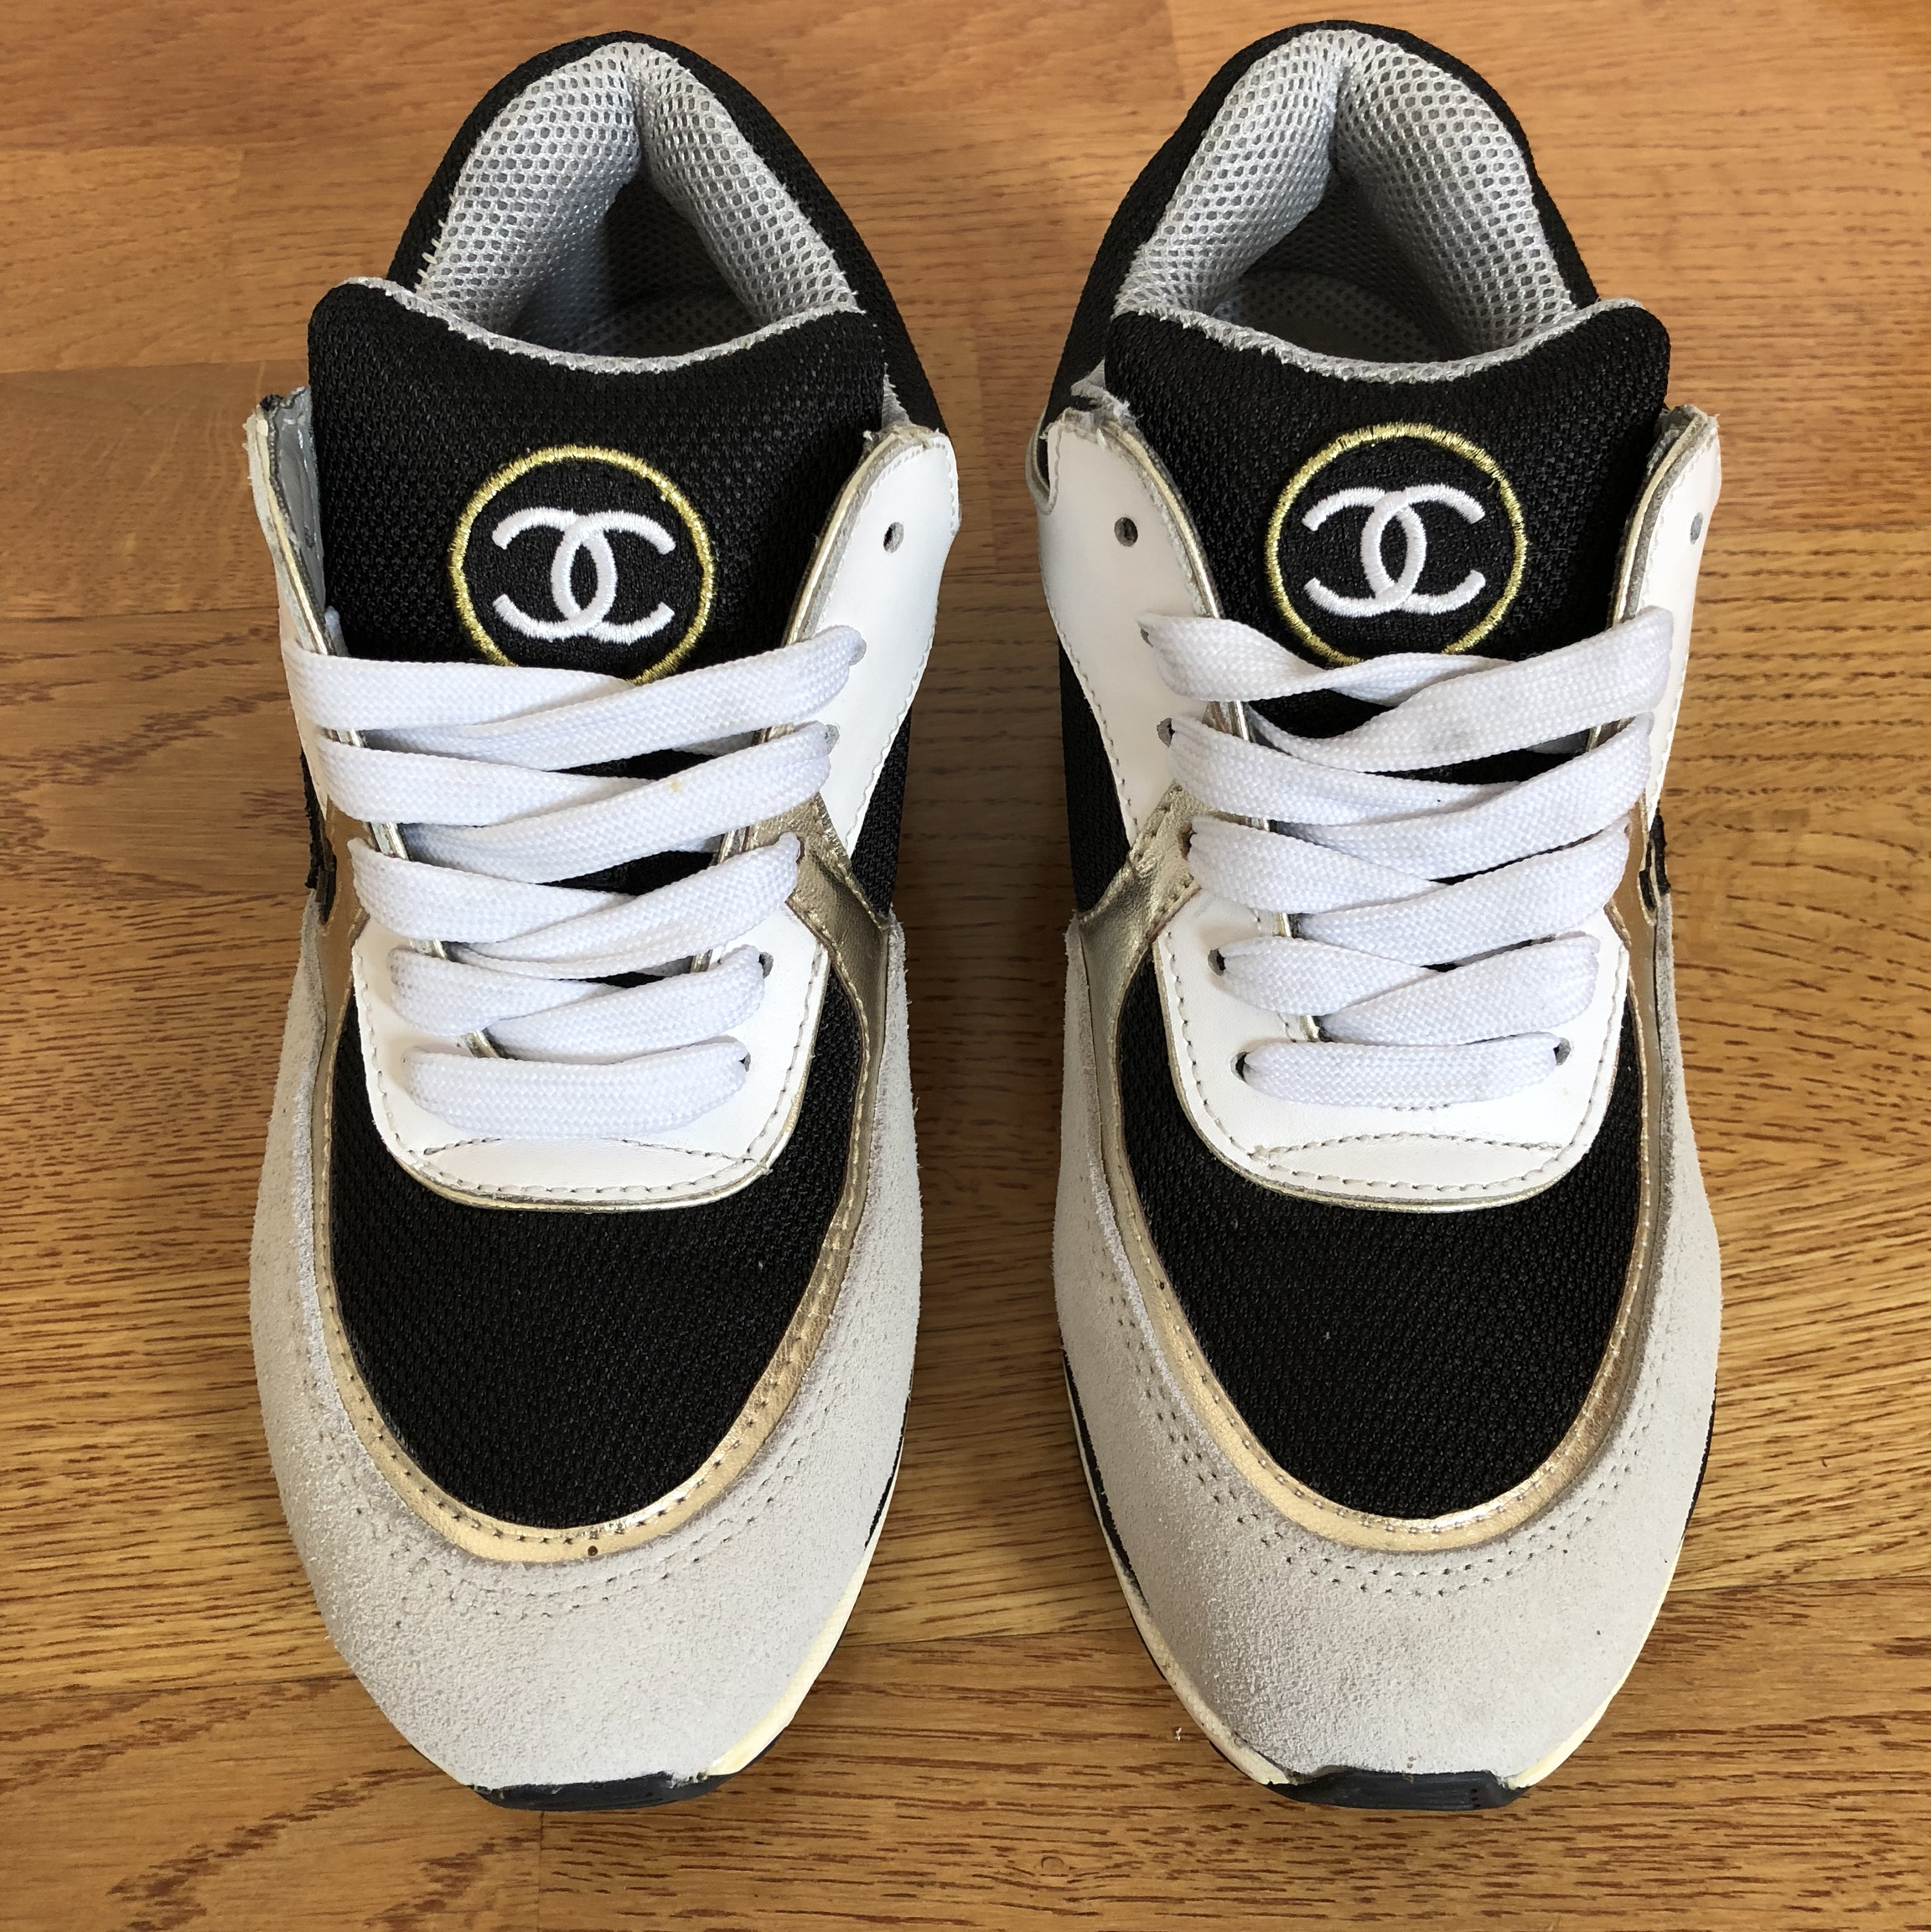 CHANEL TRAINER COCO MADE IN ITALY 37 6